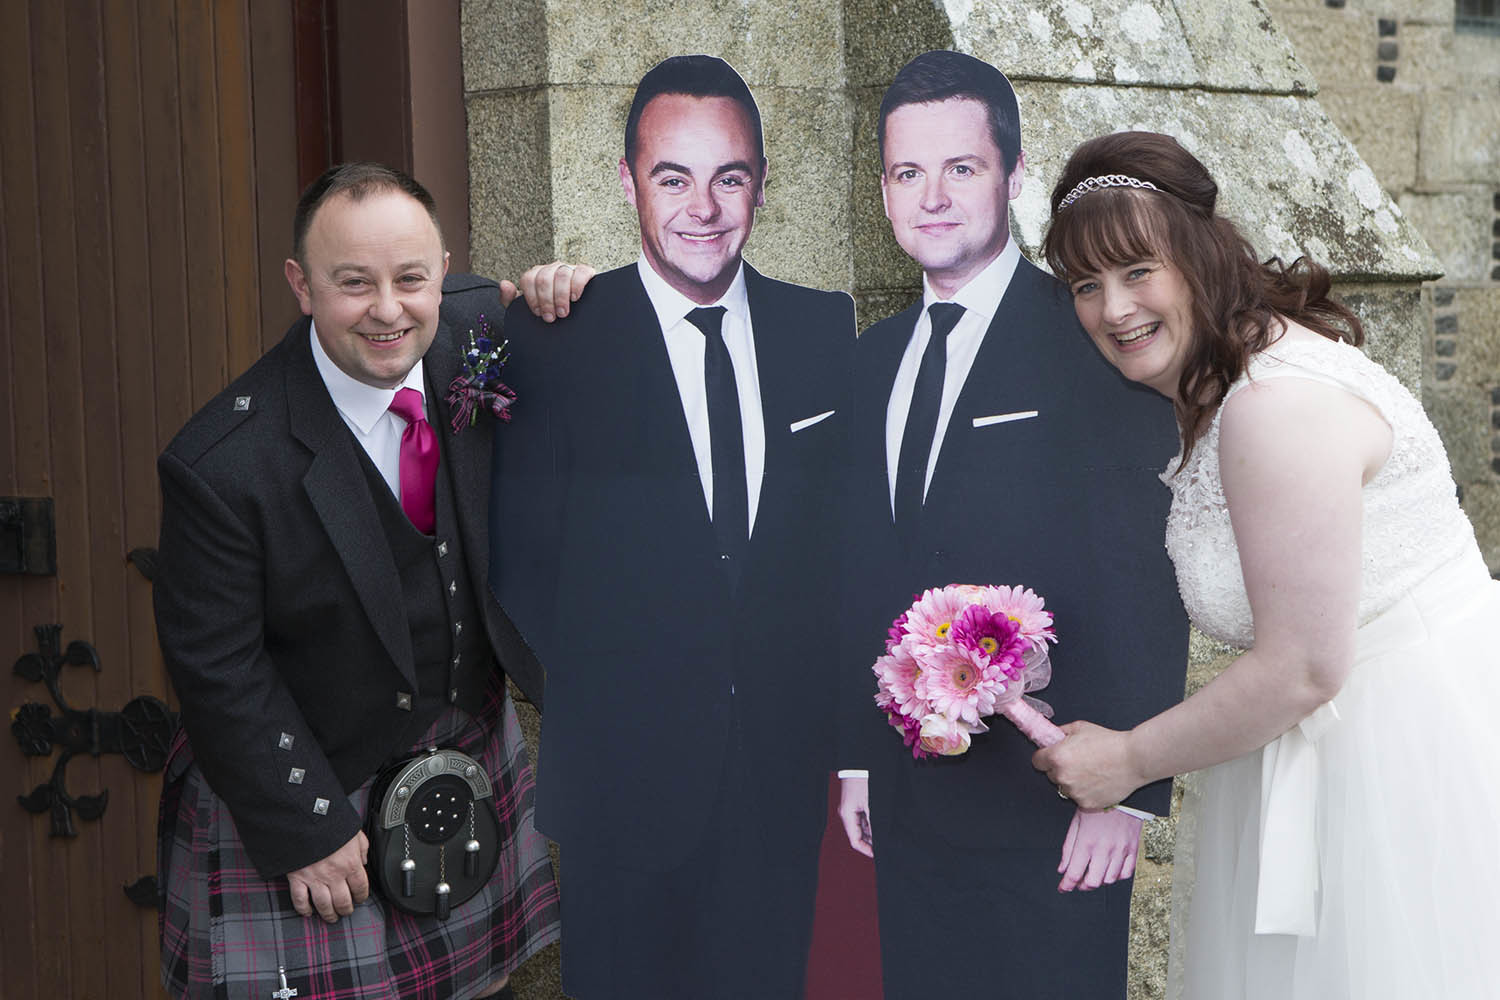 Don and Julie Allan with their famous ushers